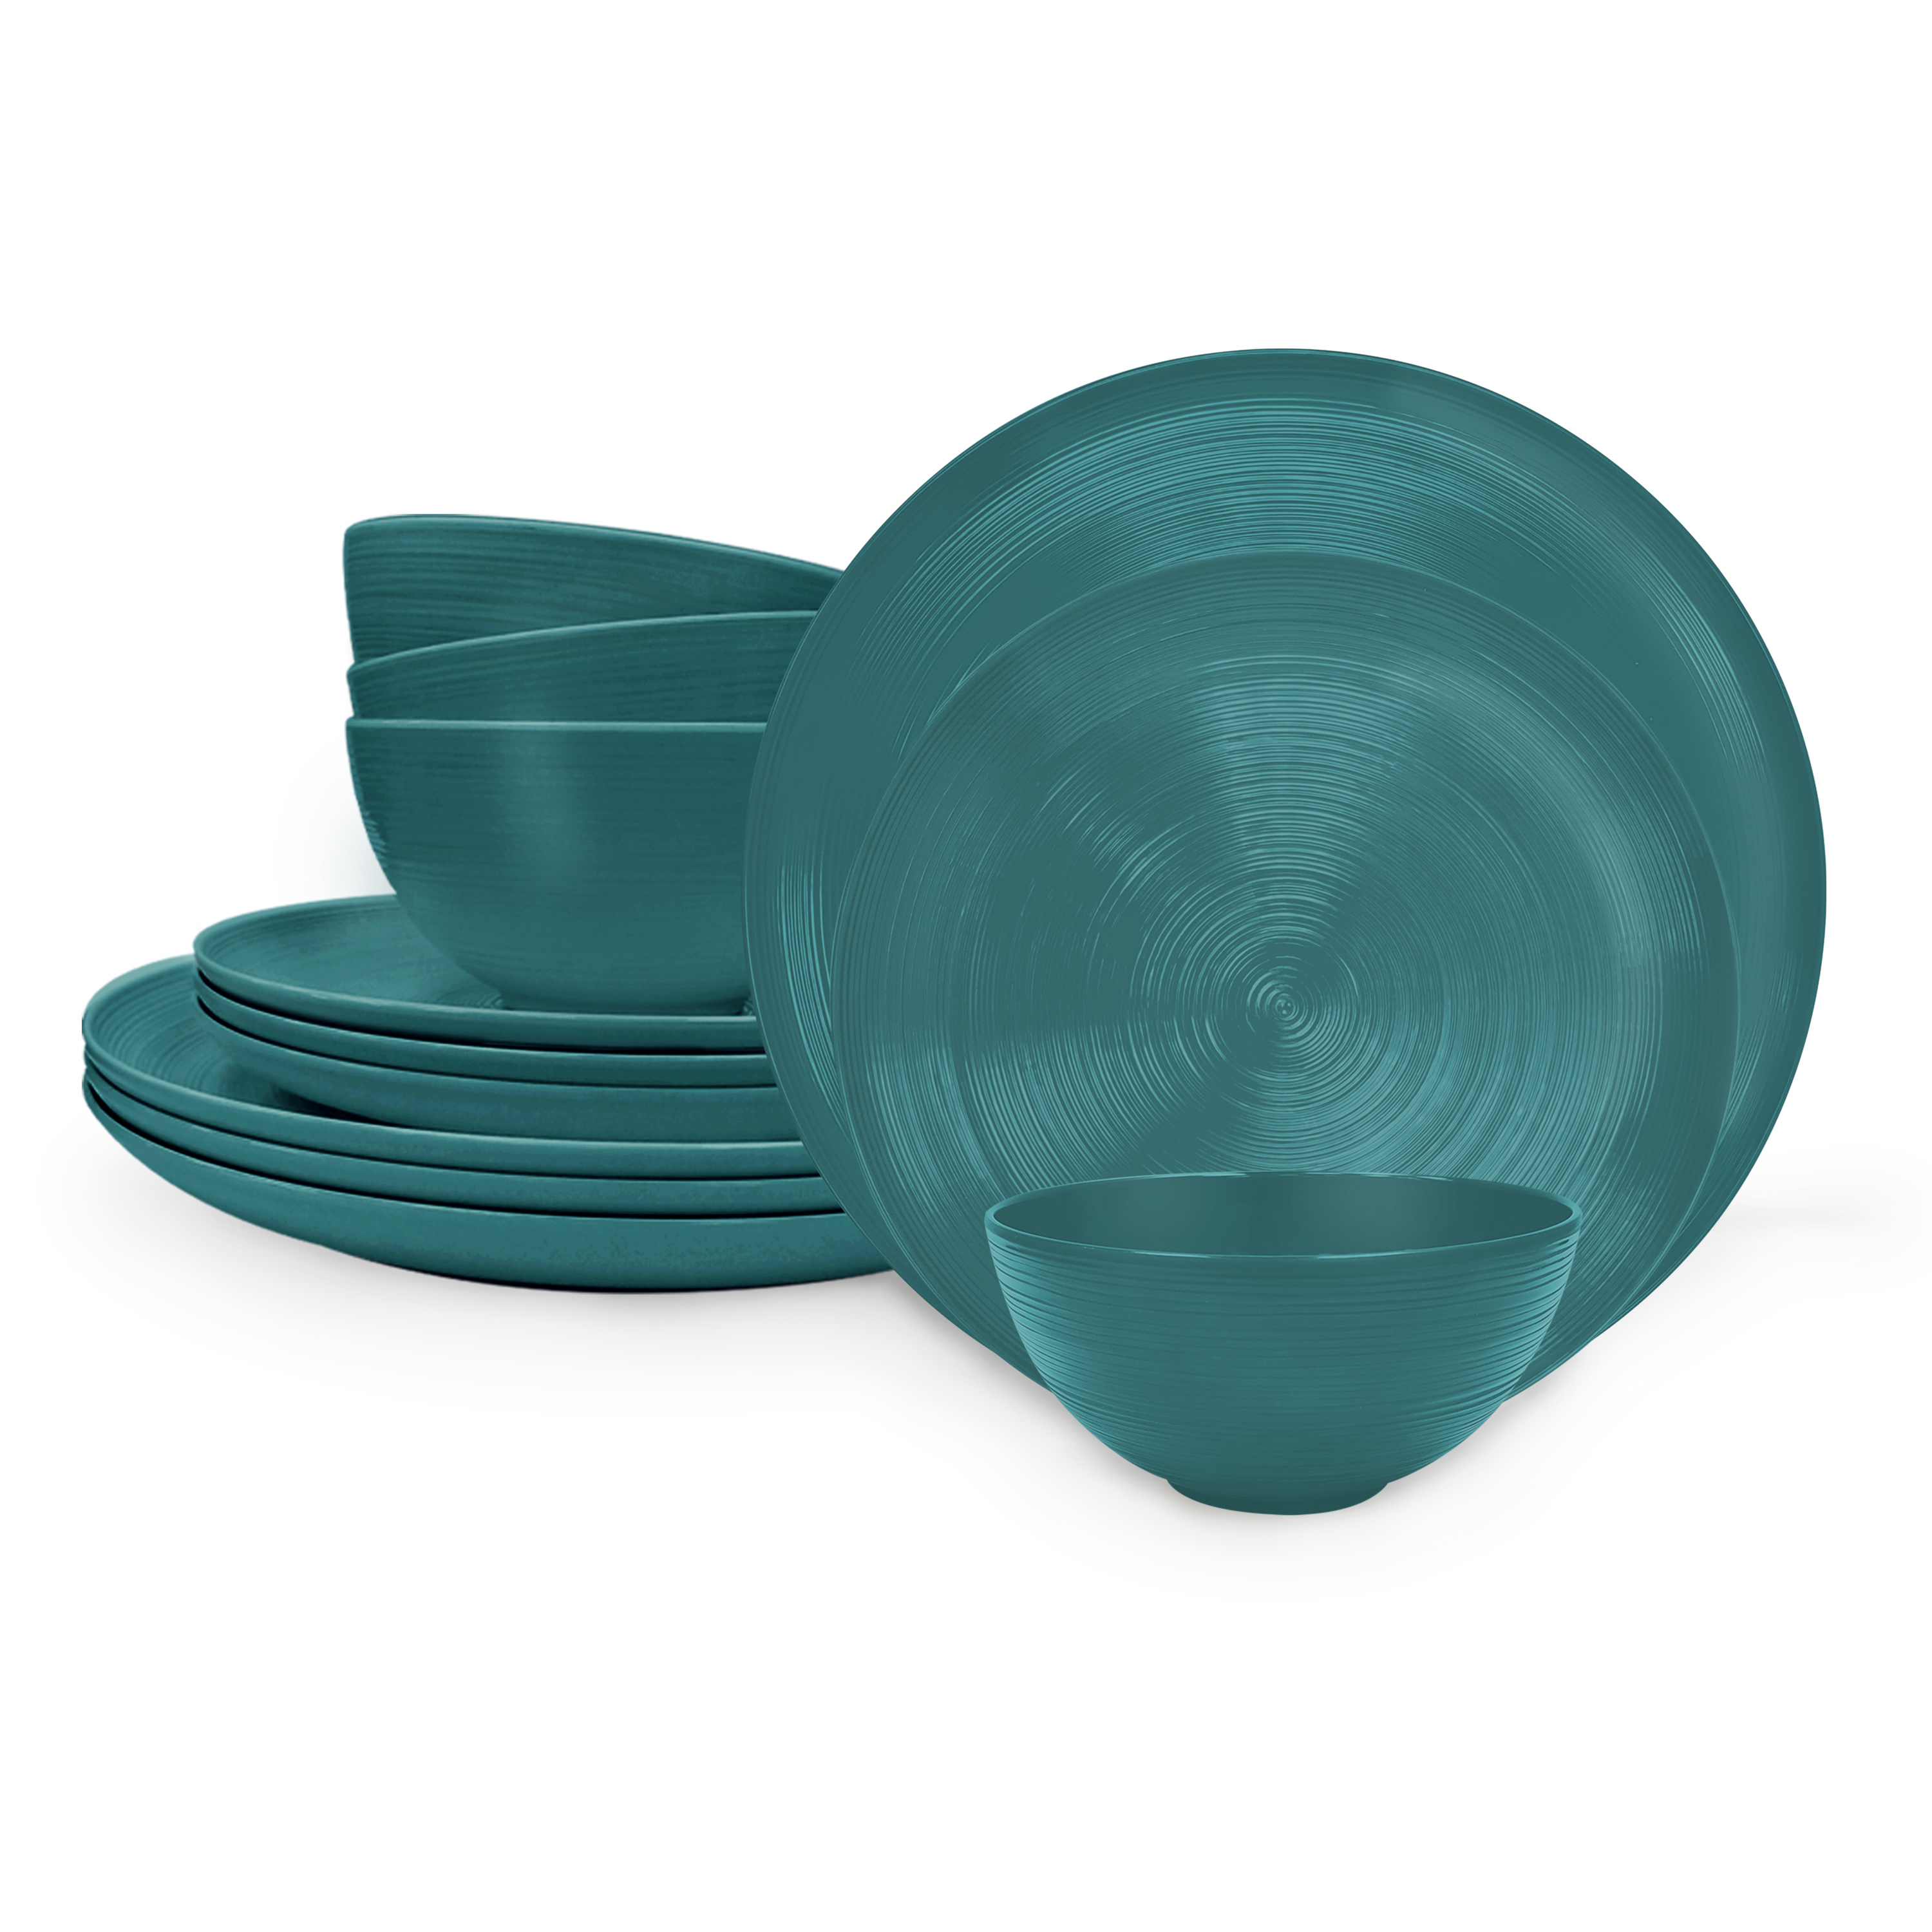 American Conventional Plate & Bowl Sets, Marine, 12-piece set slideshow image 2